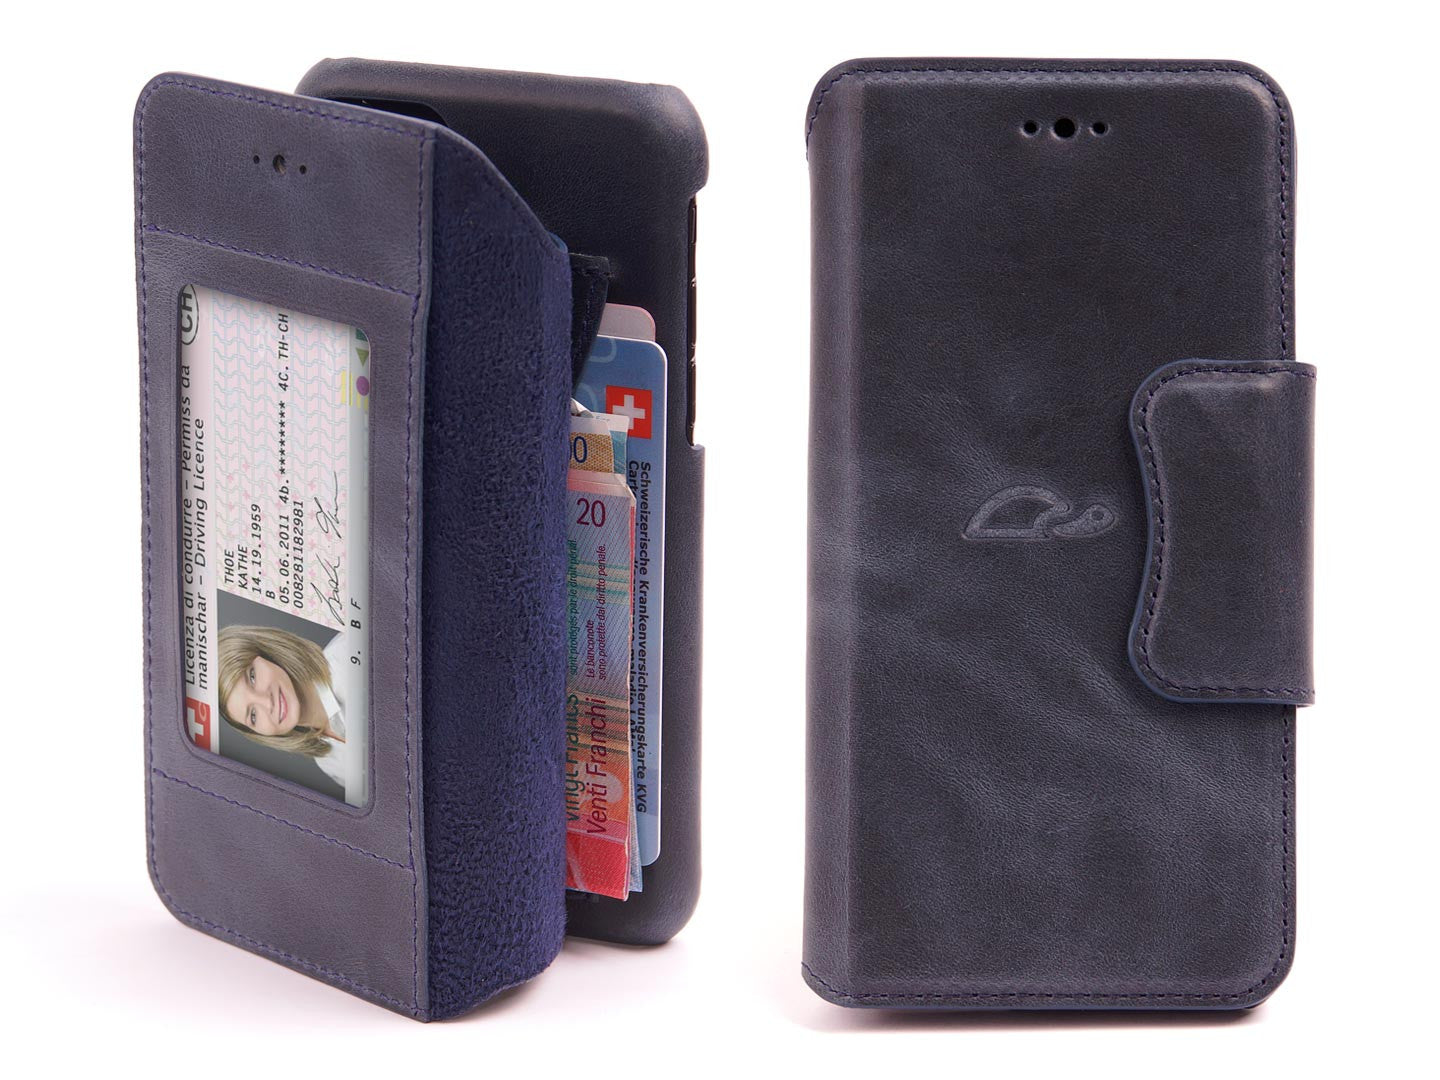 newest 6b50a c0e27 iPHONE 7 / 7 PLUS / 8 / 8 PLUS LEATHER WALLET CASE - DARK BLUE